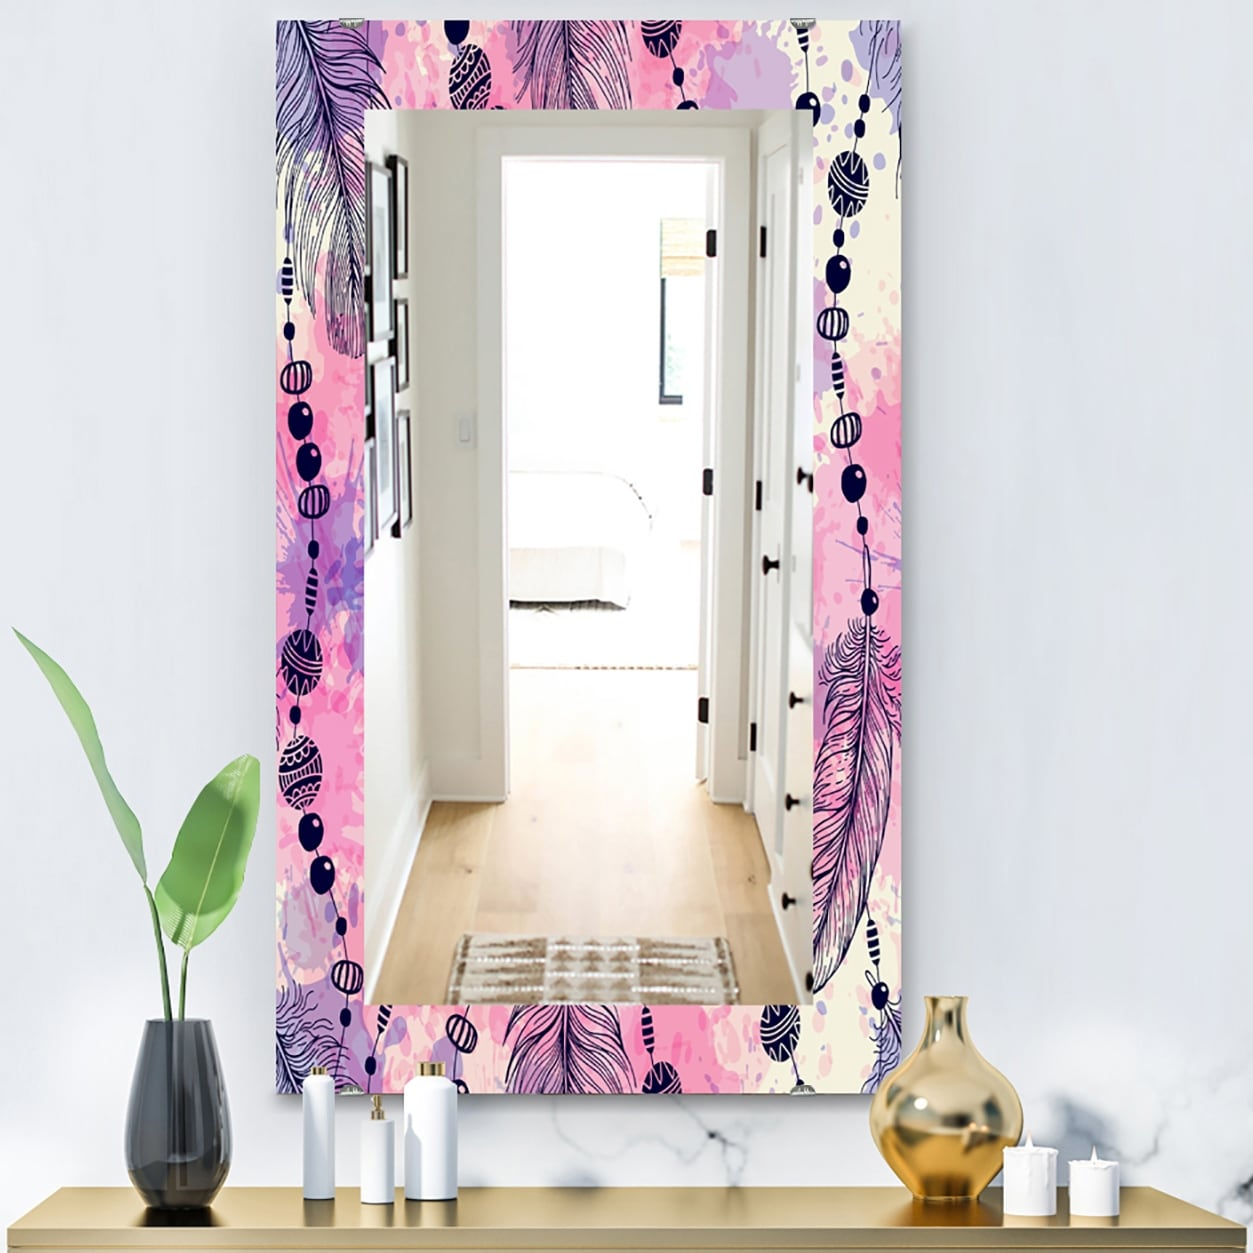 Designart Feathers 30 Bohemian And Eclectic Mirror Frameless Eclectic Bathroom Mirror On Sale Overstock 28003934